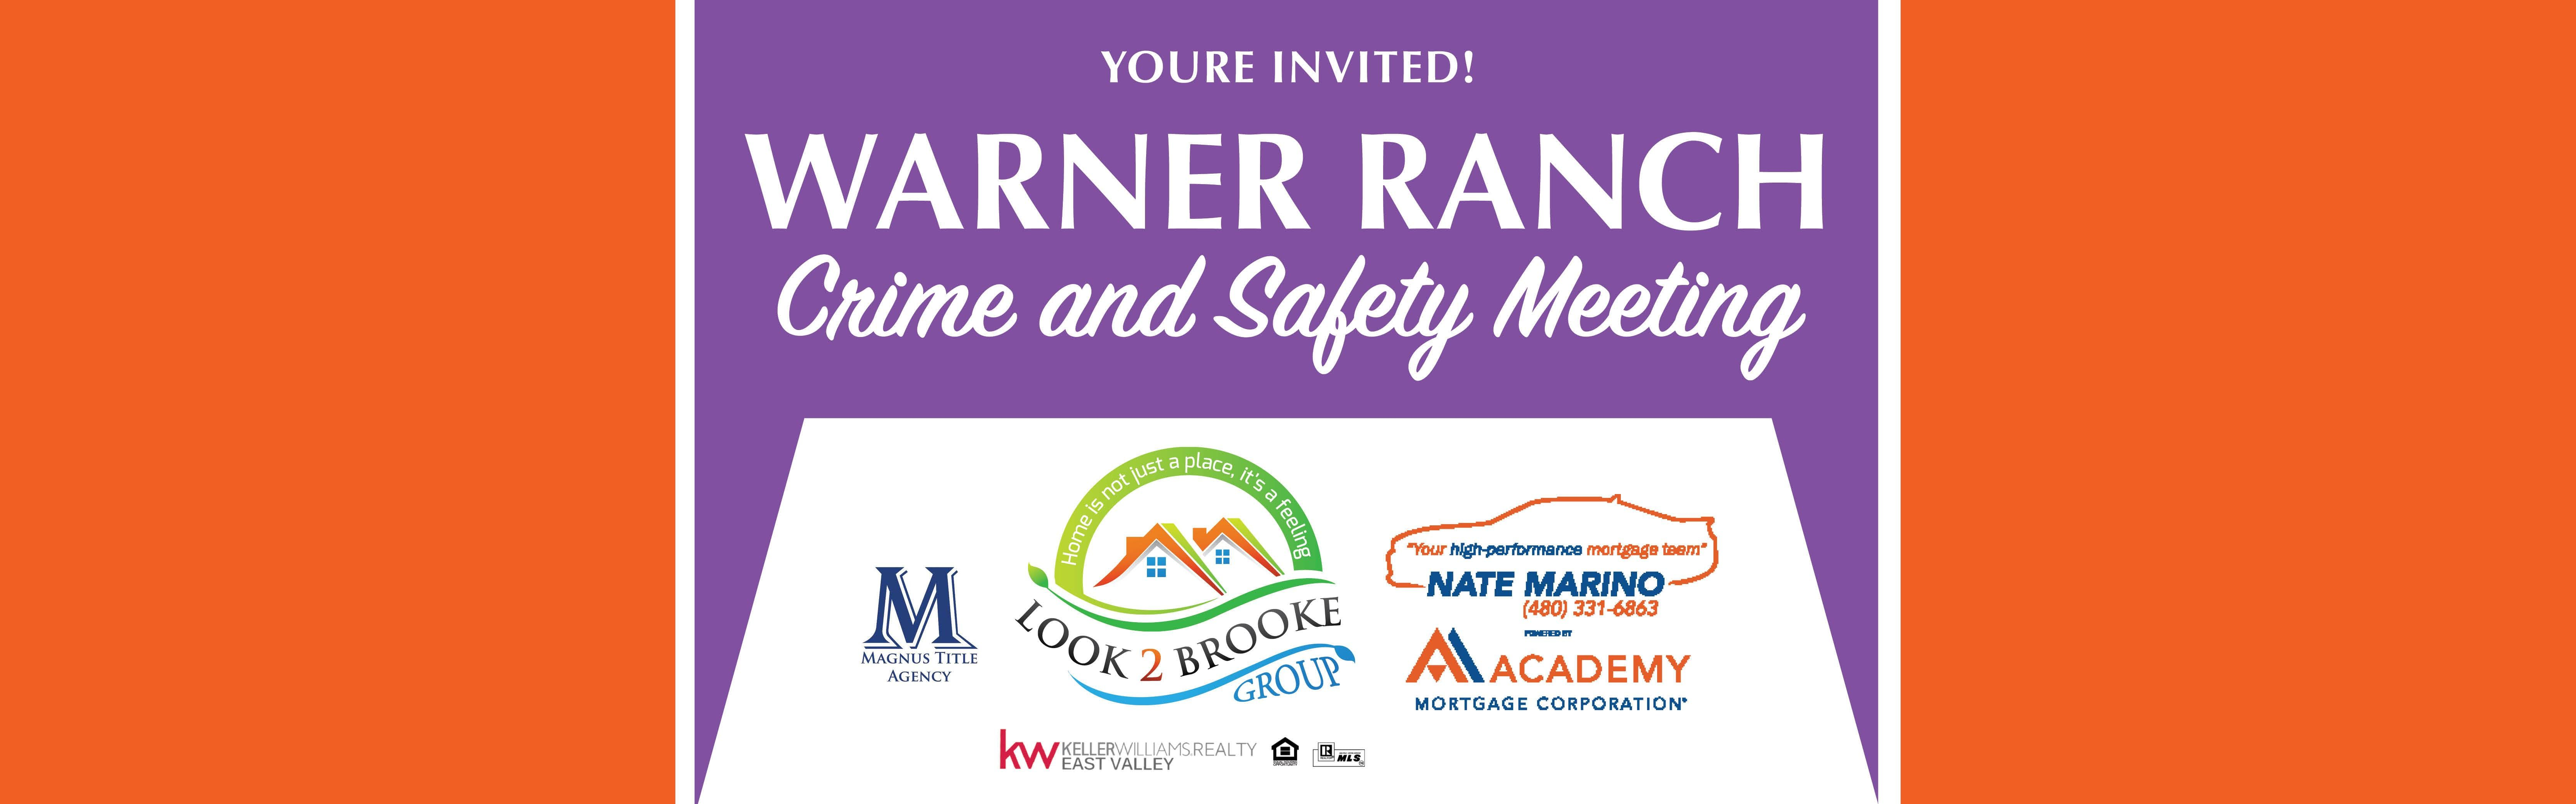 CRIME AND SAFETY MEETING - Warner Ranch